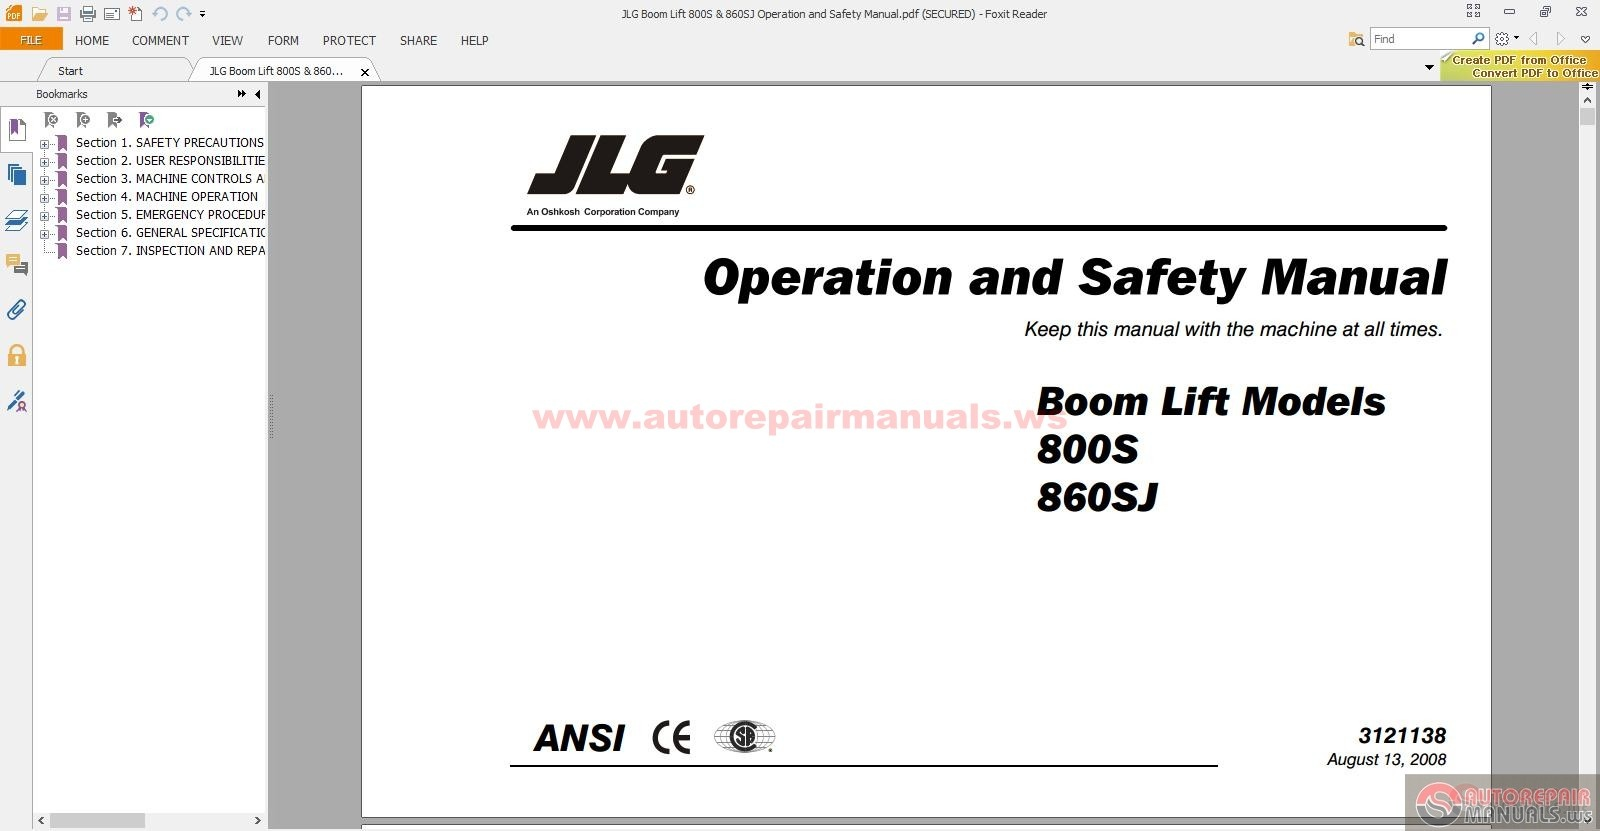 jlg boom lift 800s 860sj operation and safety manual auto jlg boom lift 800s 860sj operation and safety manual size 4 92mb language english type pdf pages 138